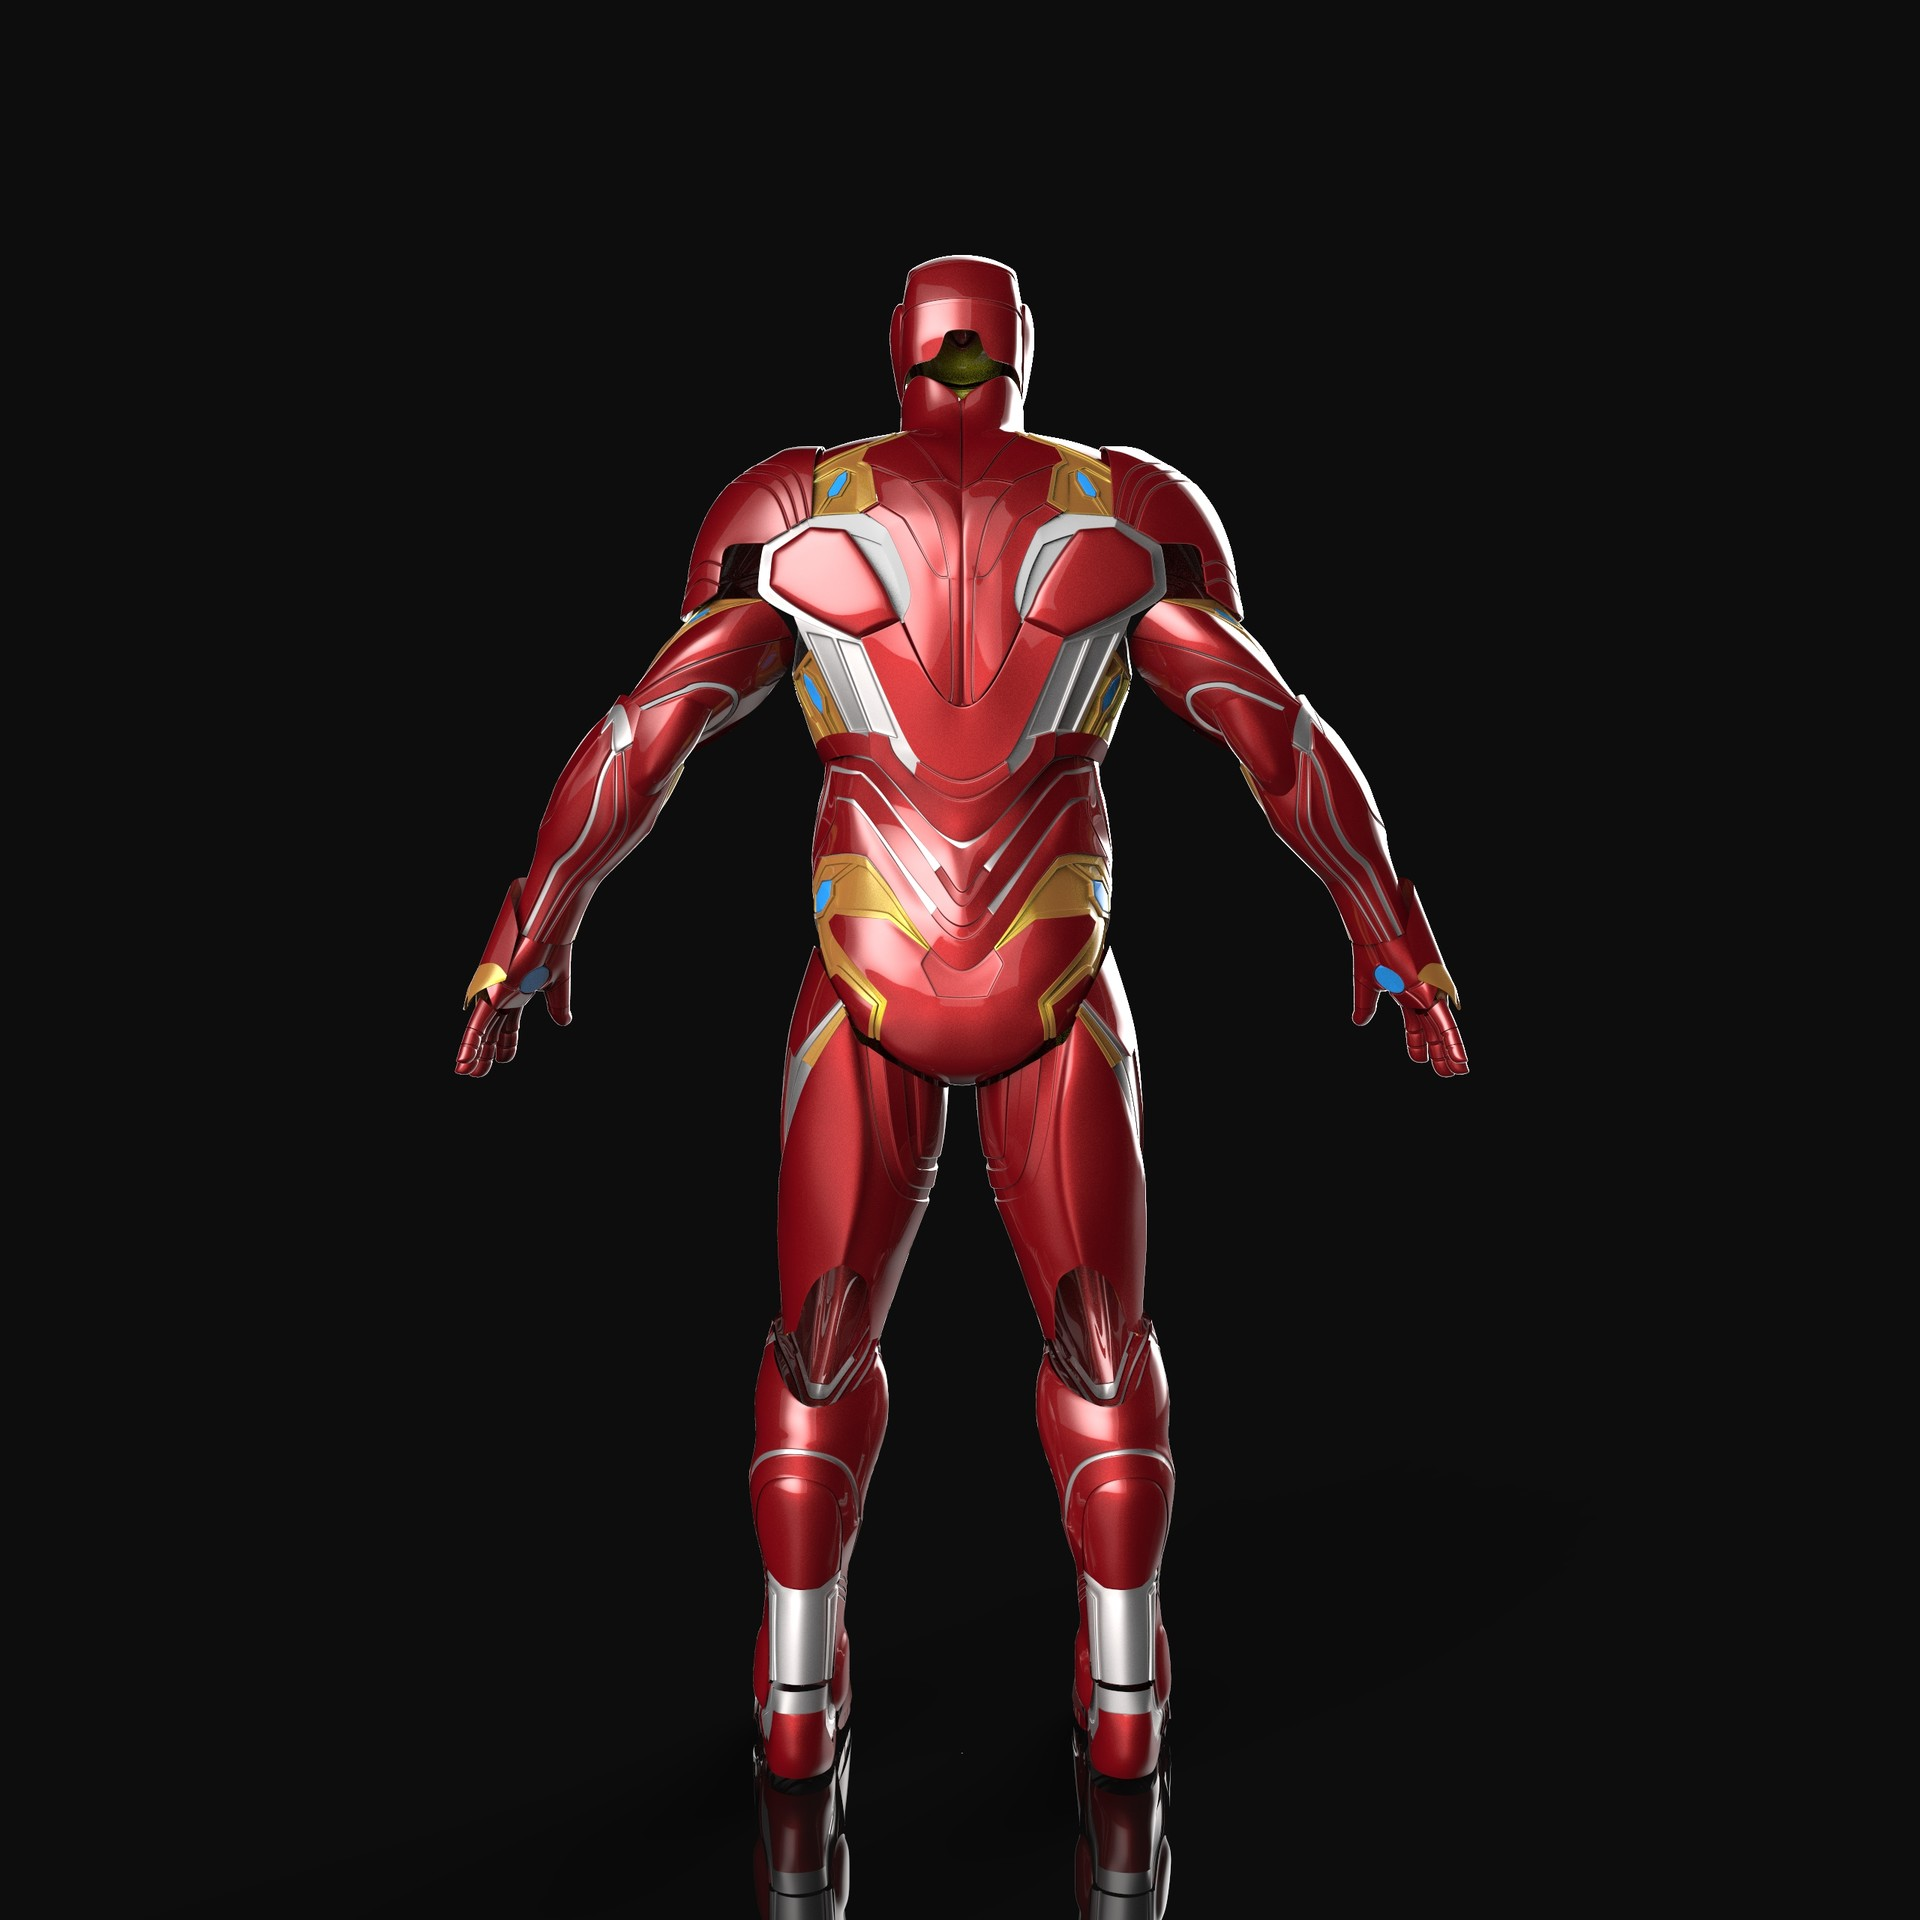 ArtStation - Infinity War Iron Man Cosplay Suit for 3d printing ...